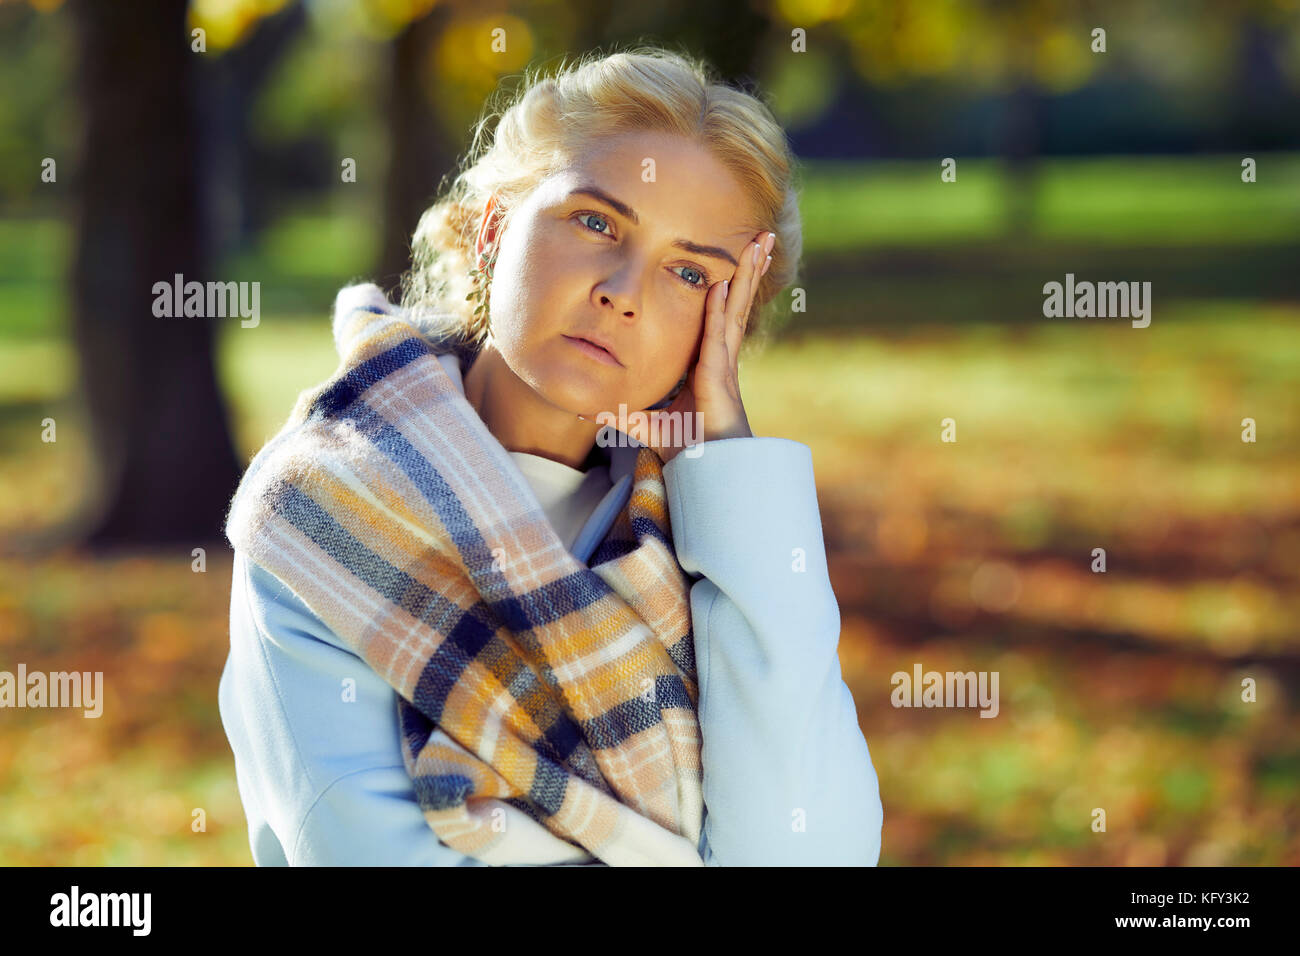 Woman looking concerned outdoors - Stock Image